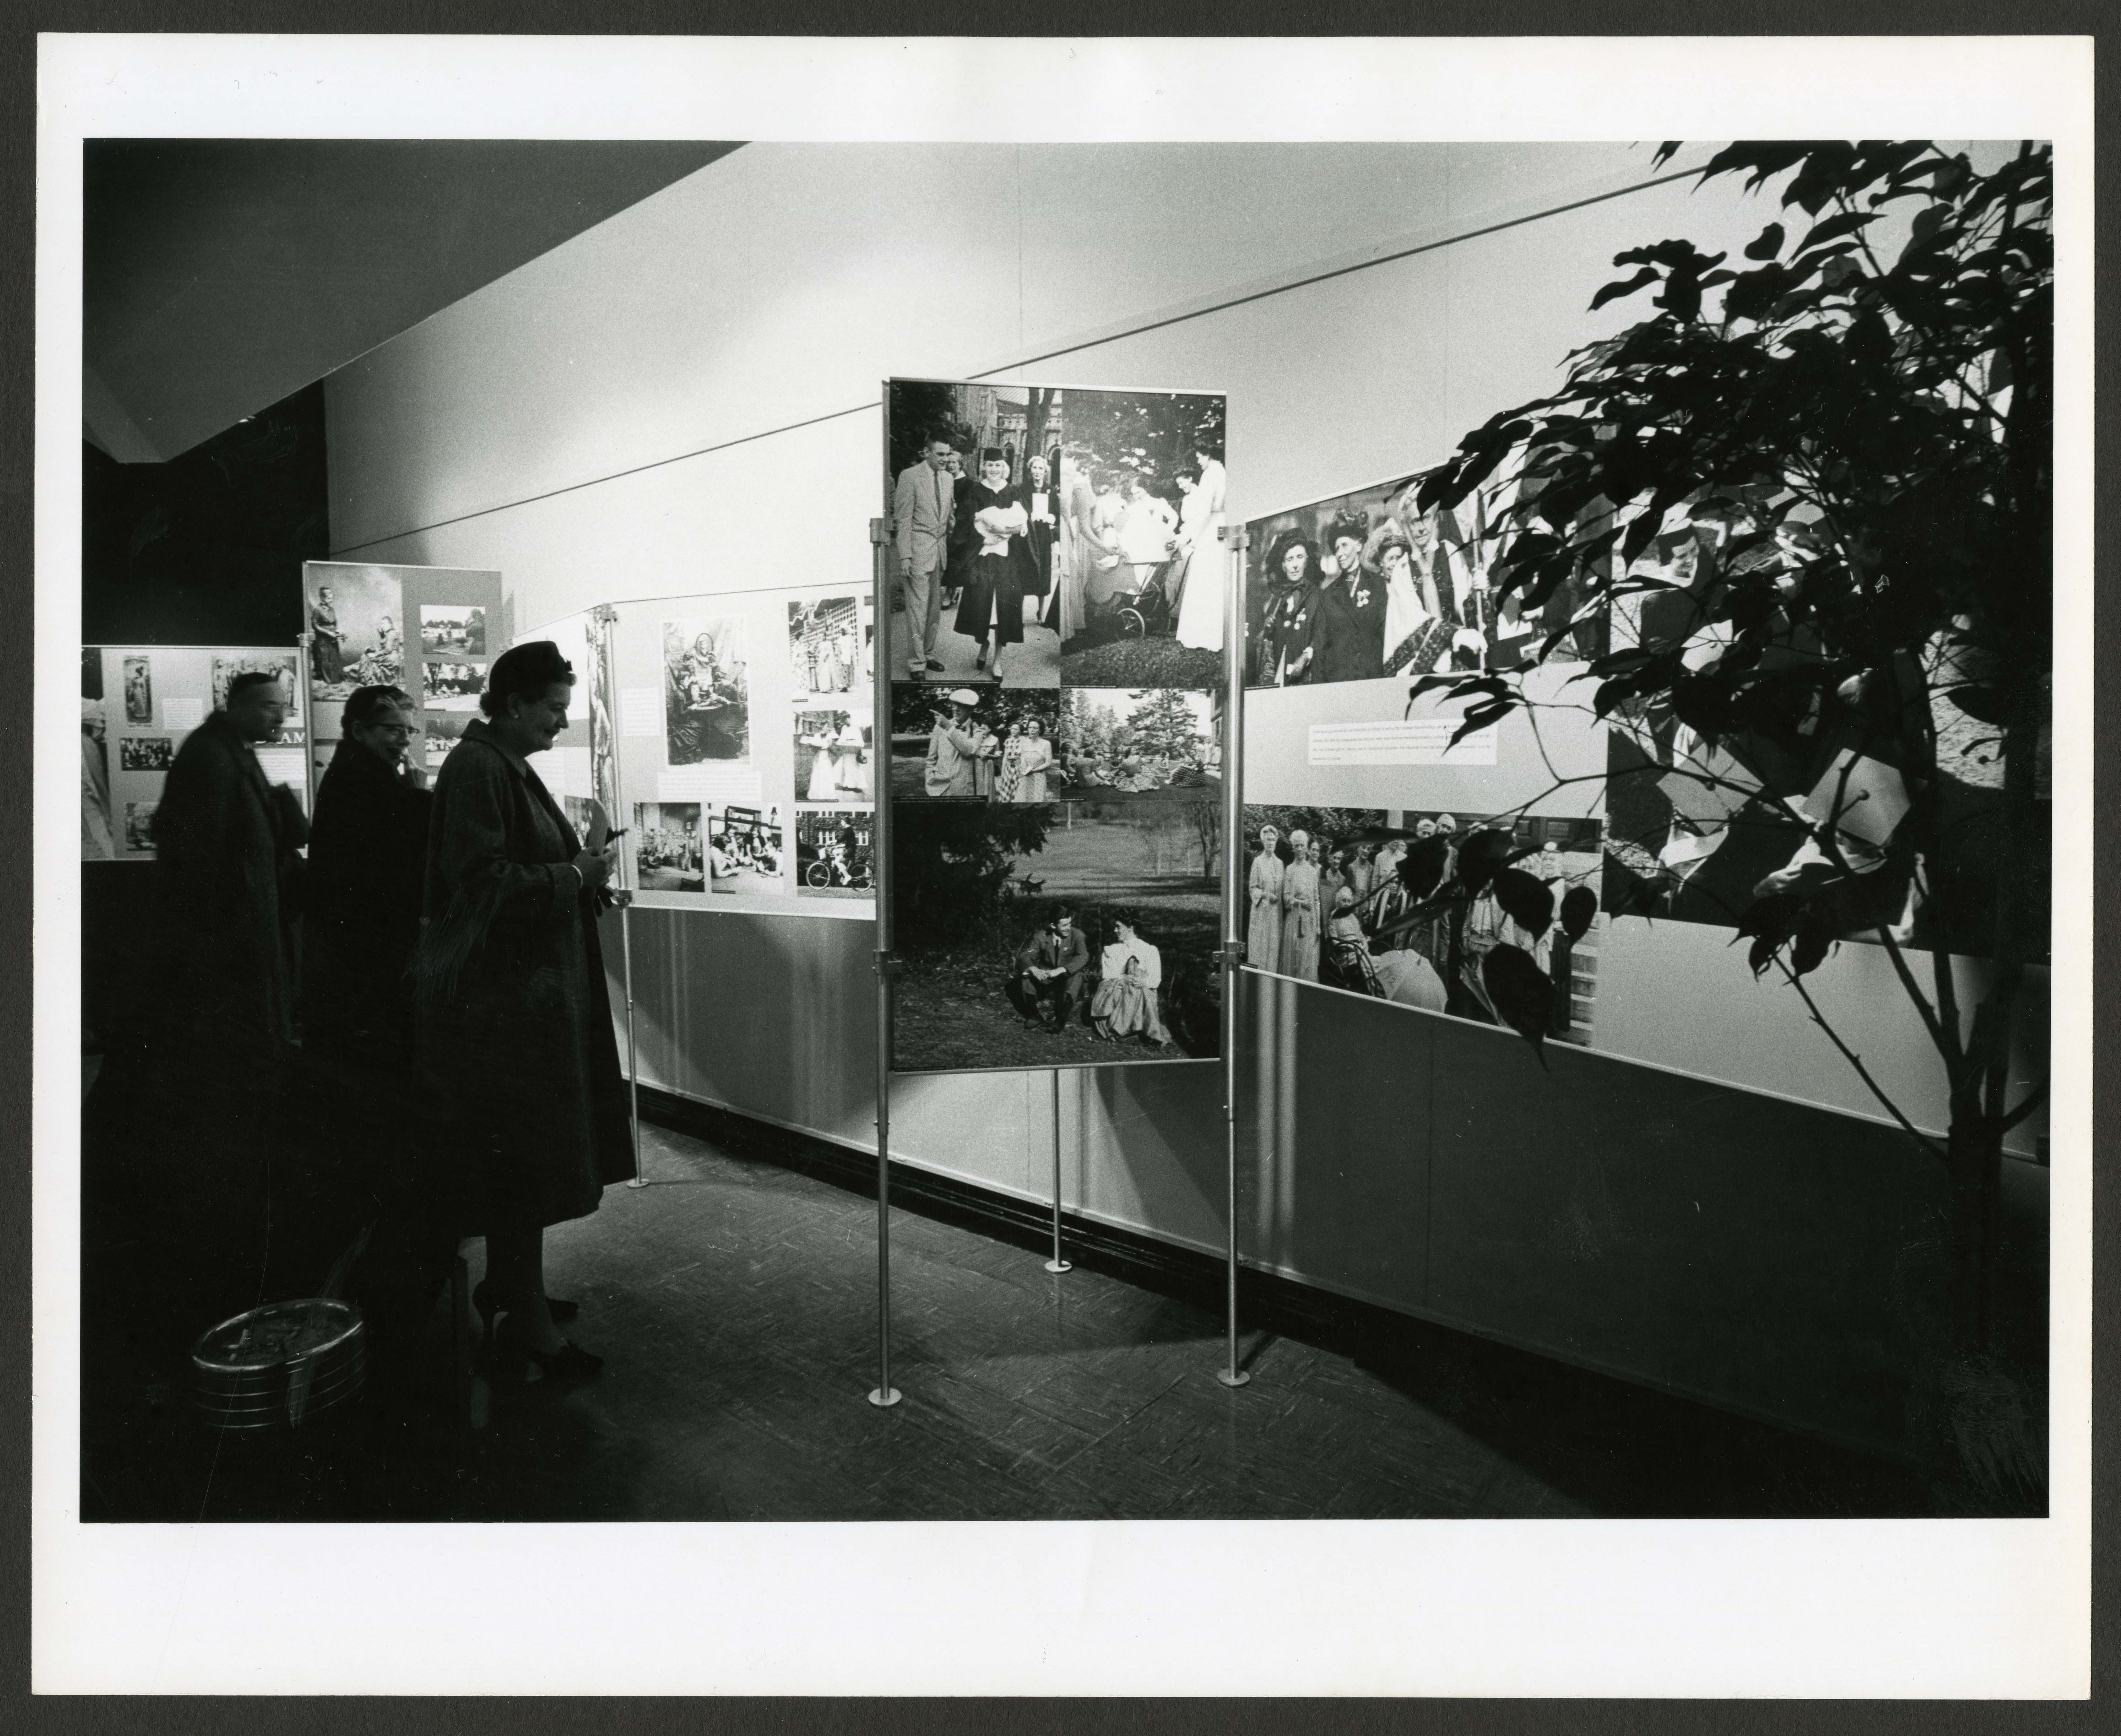 B & W image of three museum visitors viewing several museum panels.